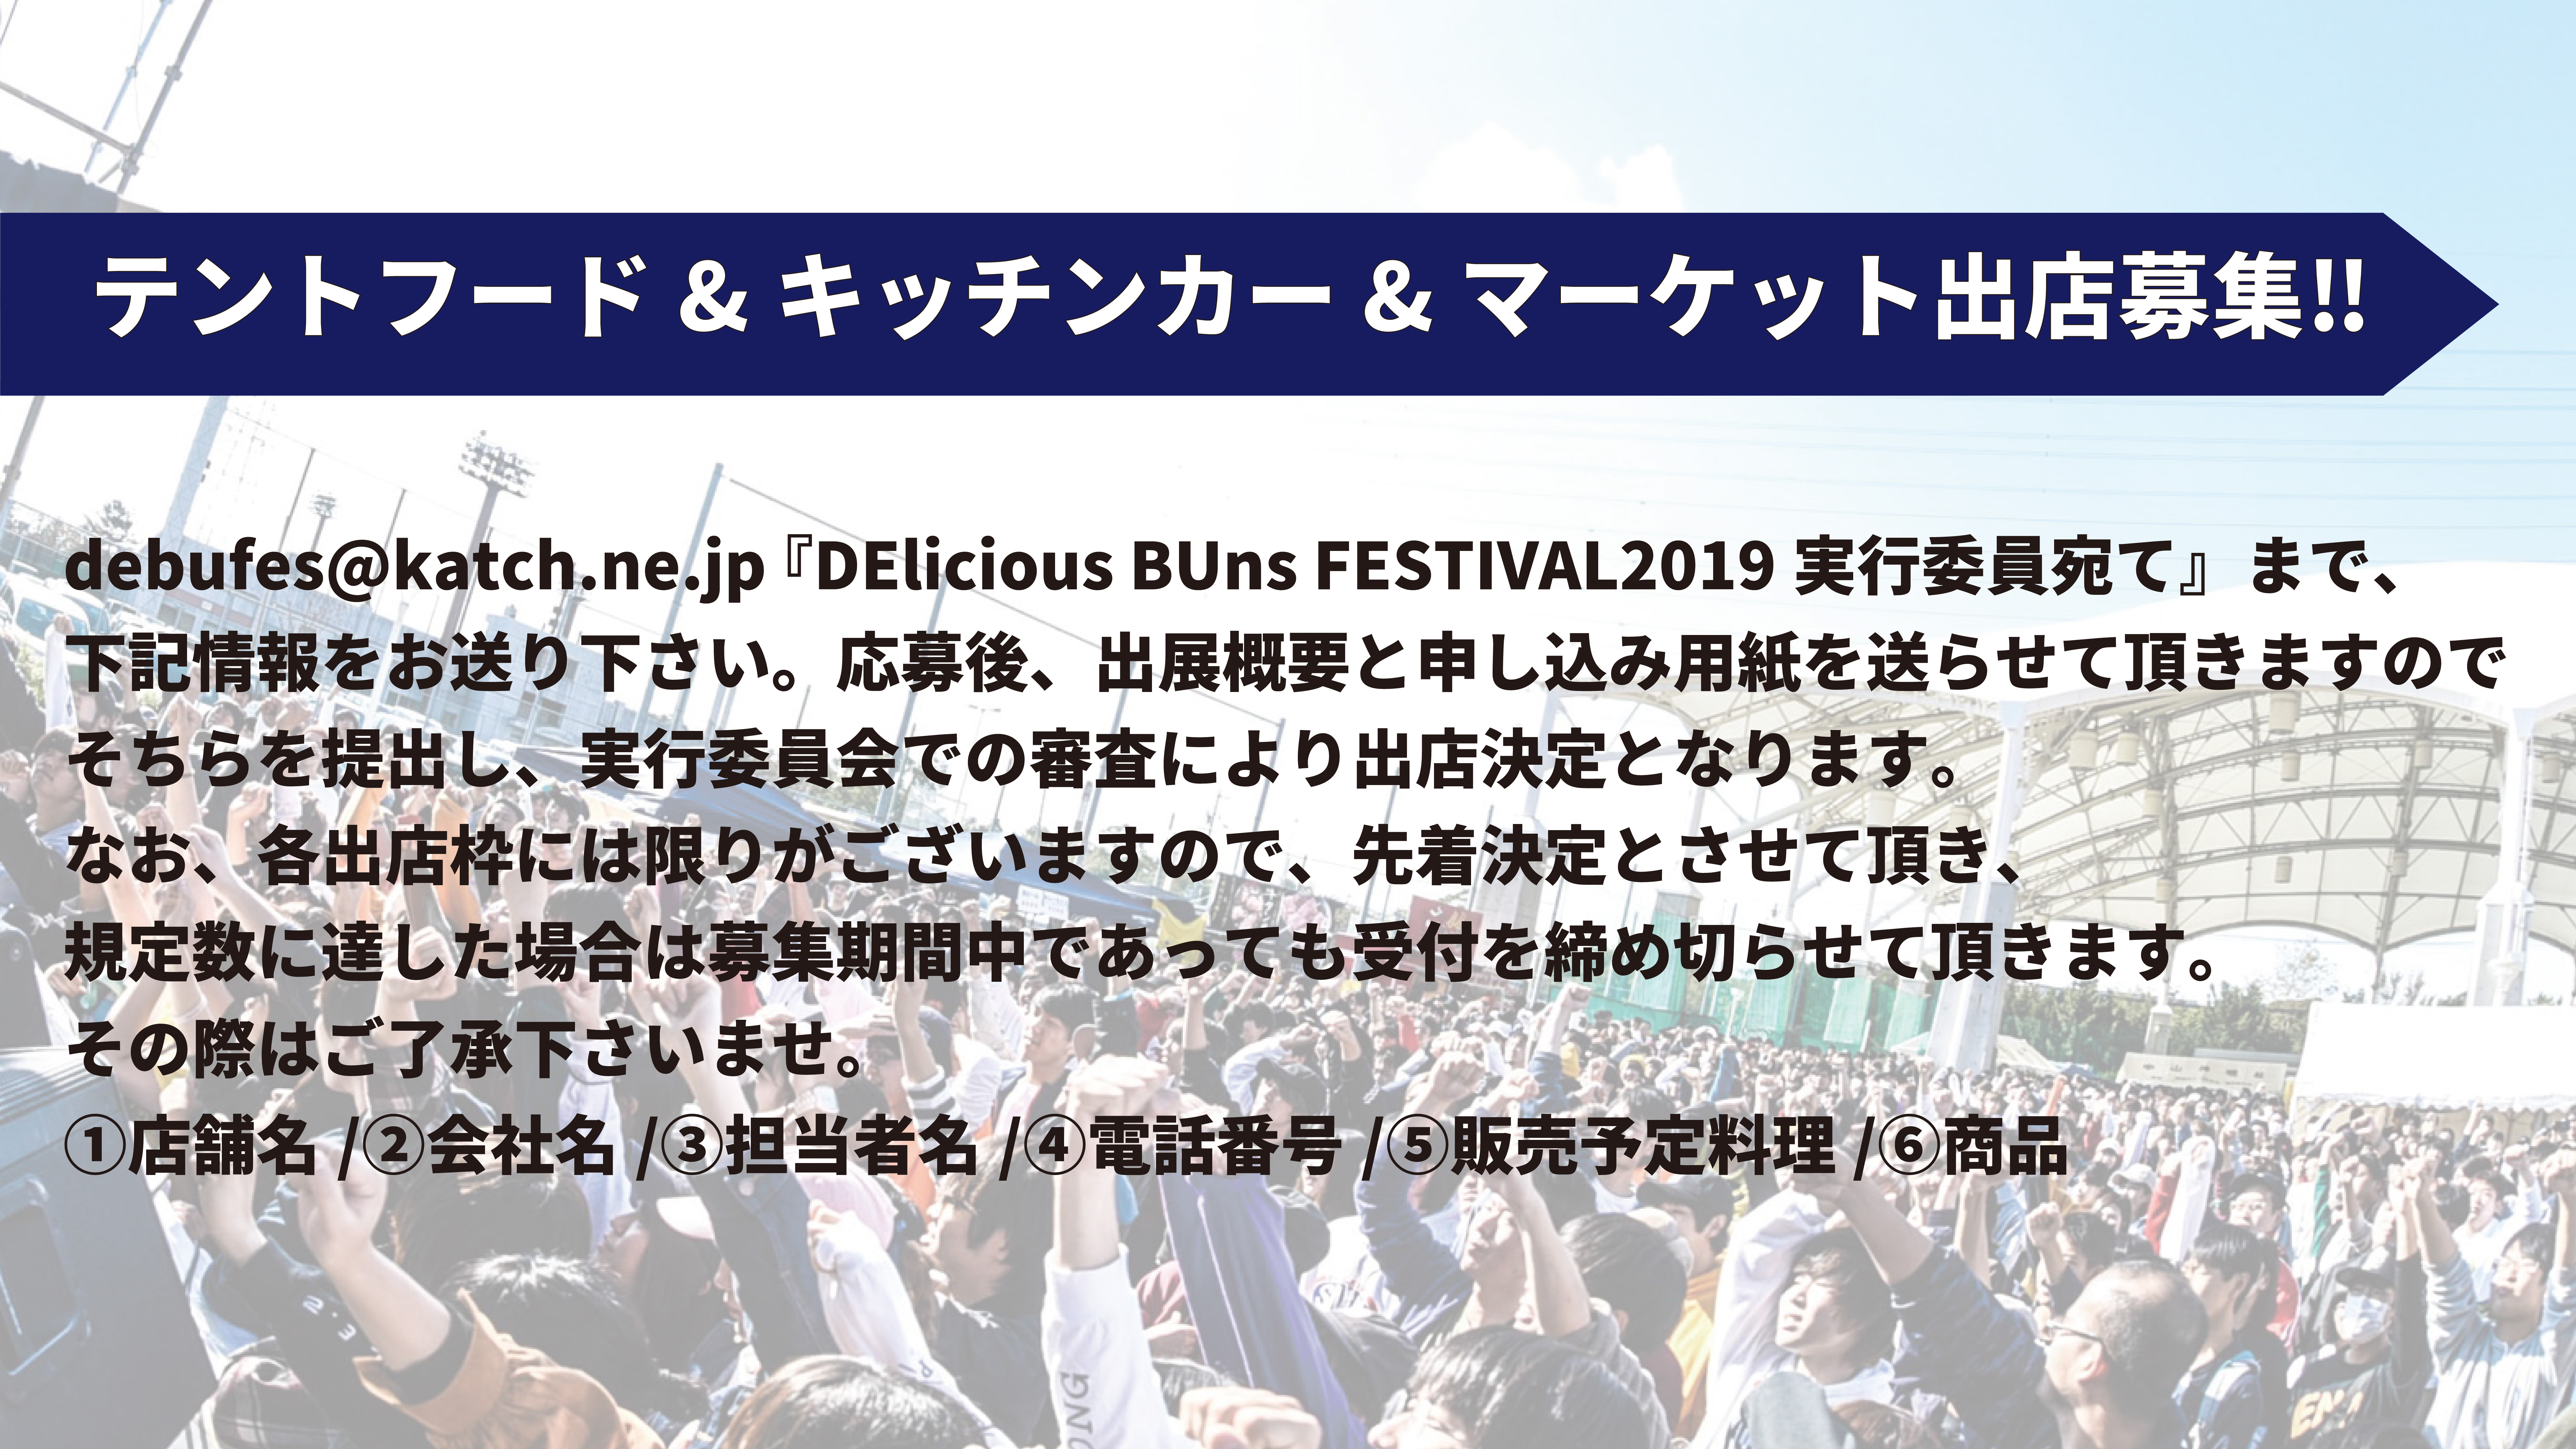 DEBUFES19_HP用_アートボード 1 のコピー 2